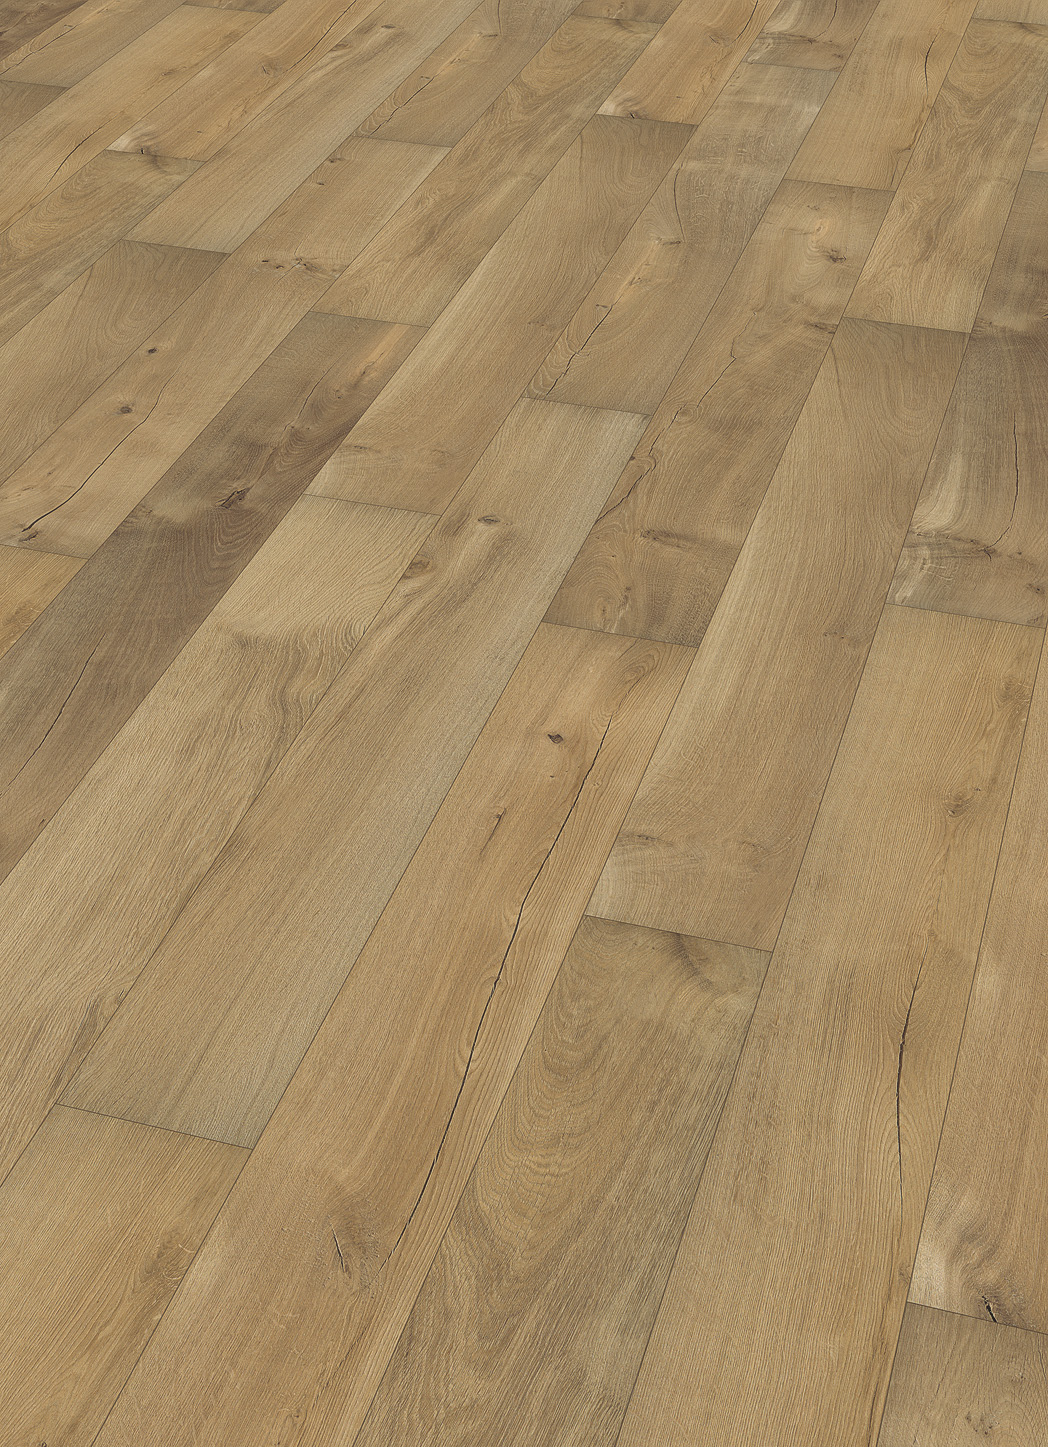 Avatara The Authentic Man Made Wood Floor From Germany